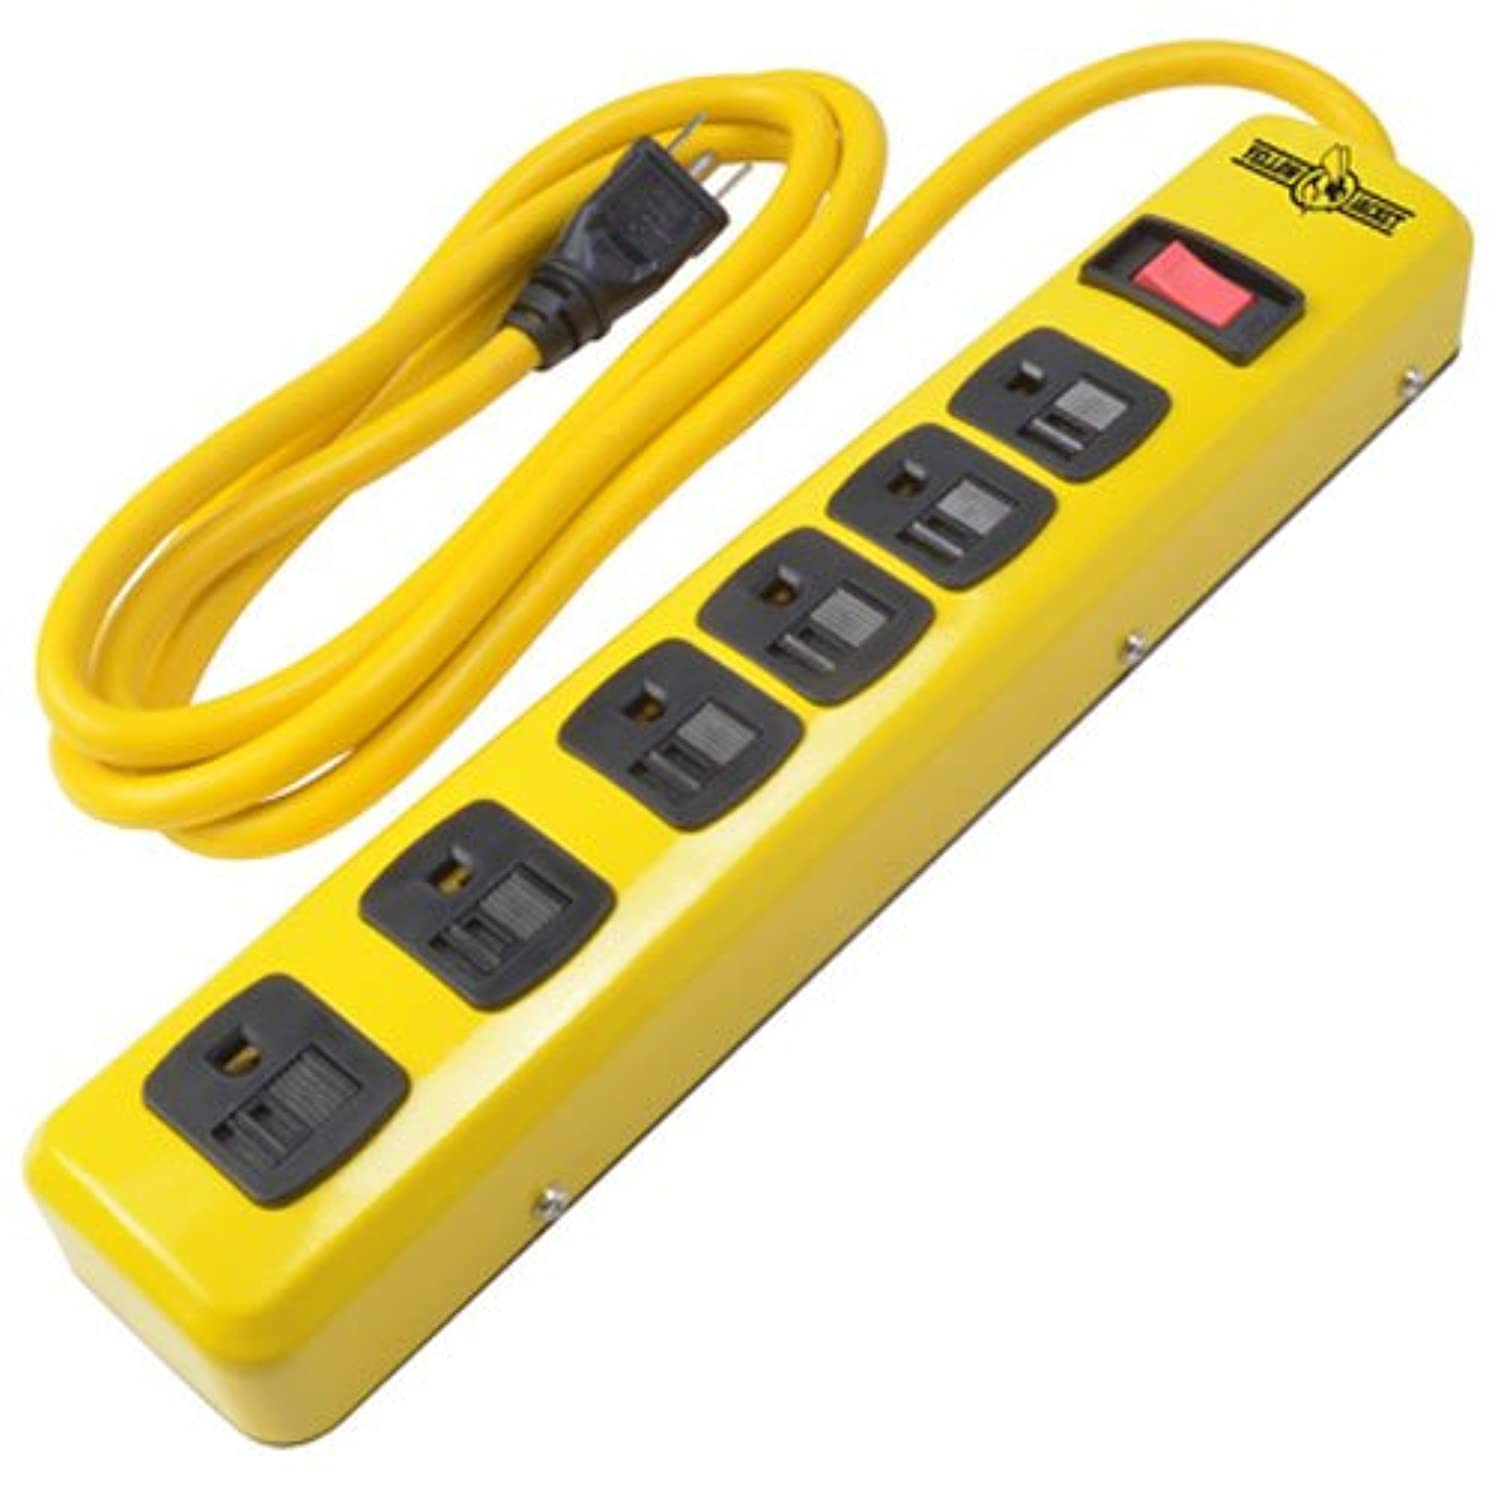 Yellow Jacket 5139N Not Not Available Metal Power Strip with 6 Outlets and 6 Foot Cord, Yellow